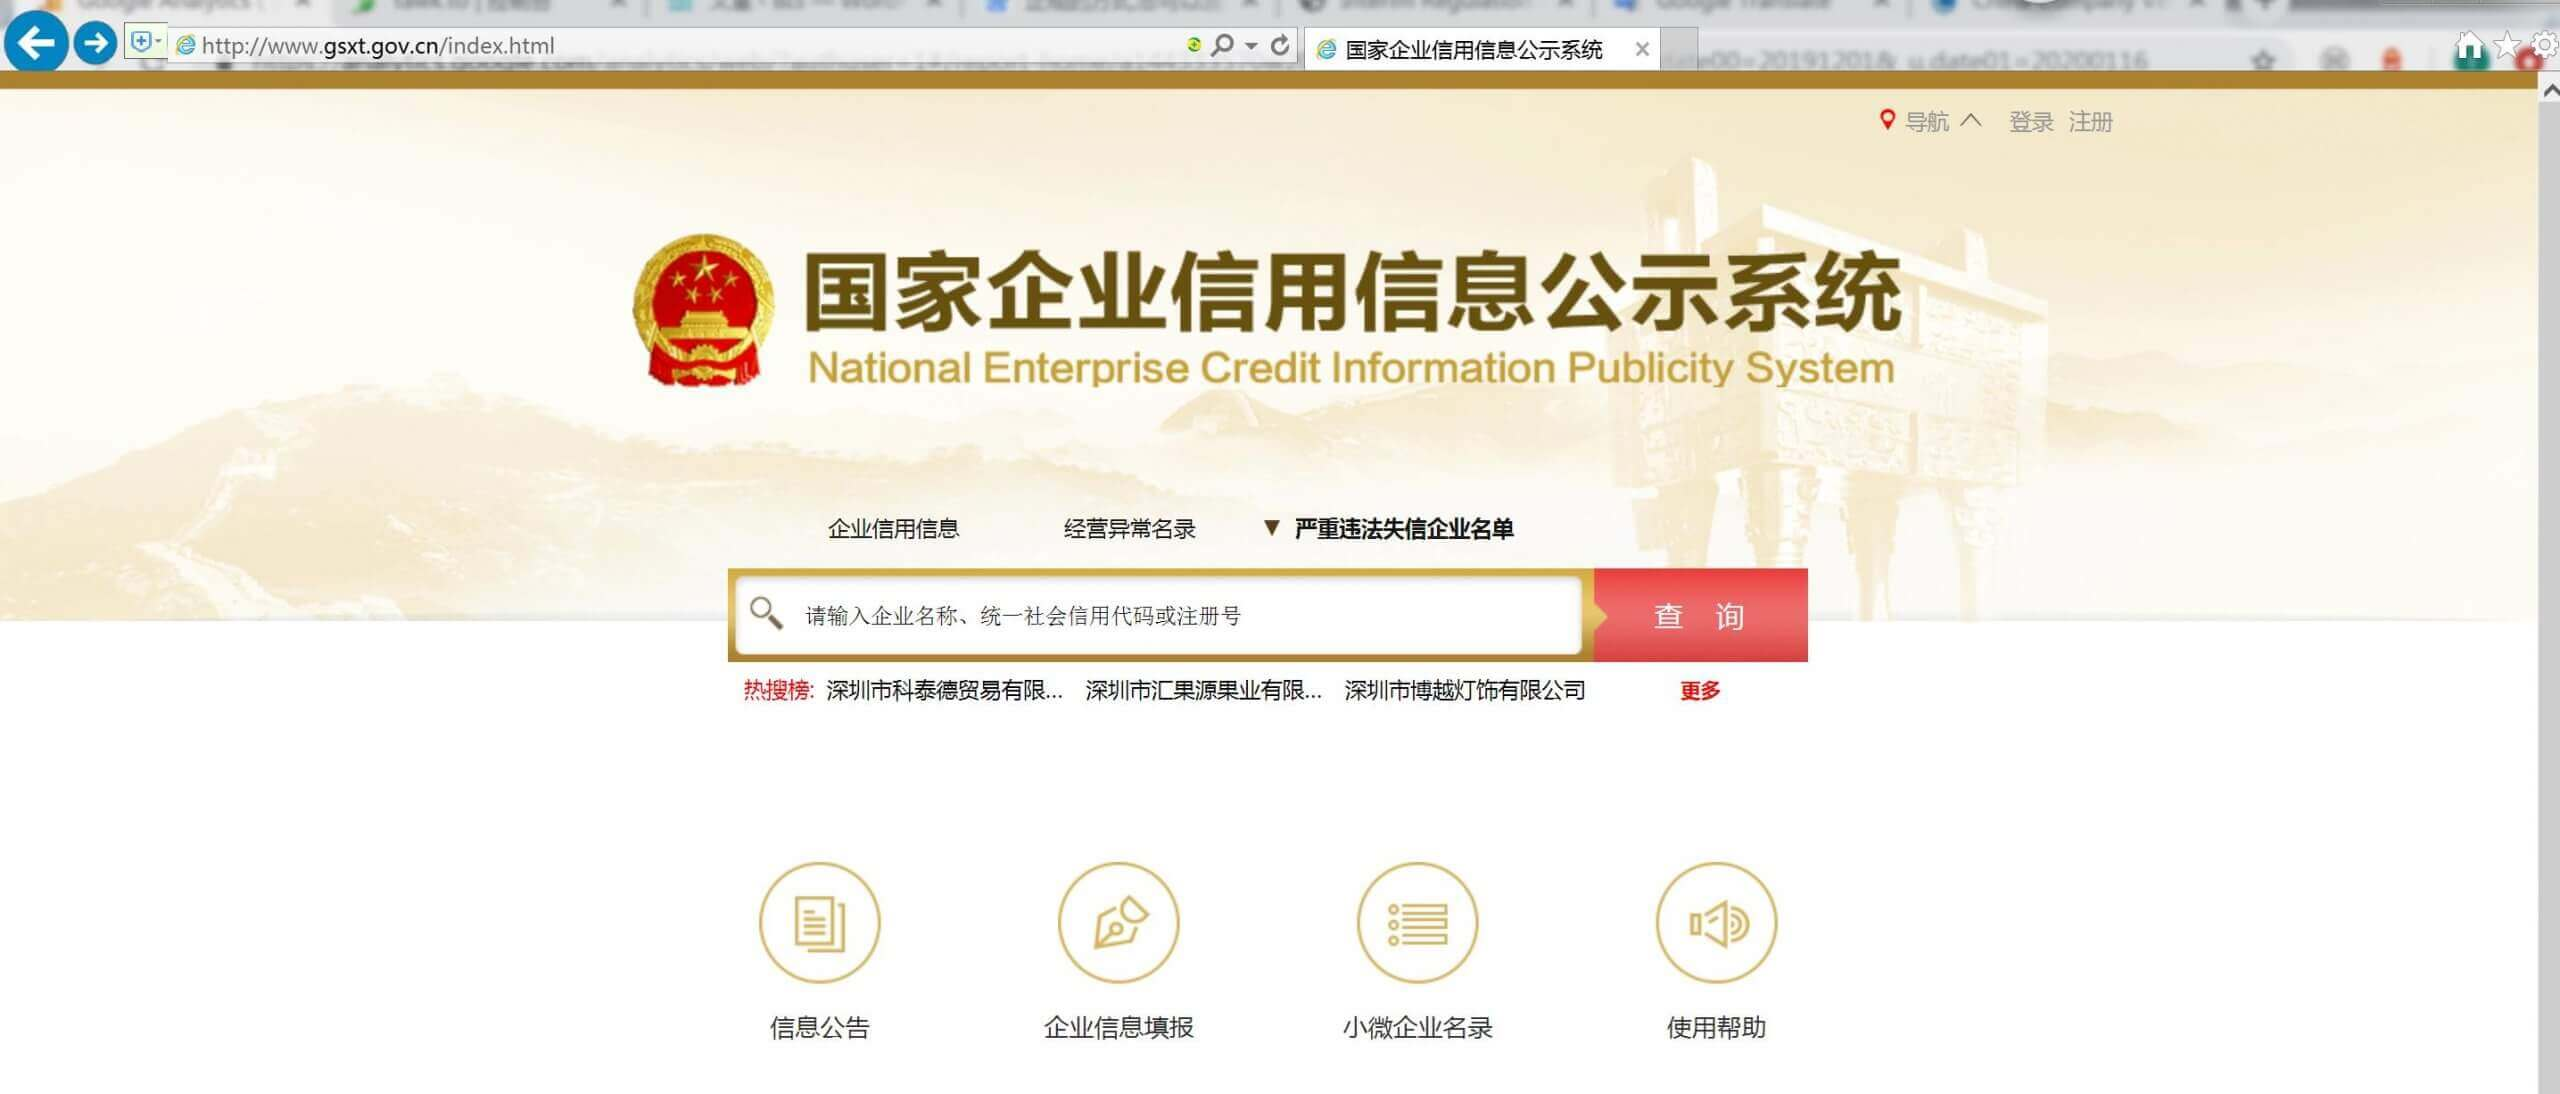 Chinese company's public credit system